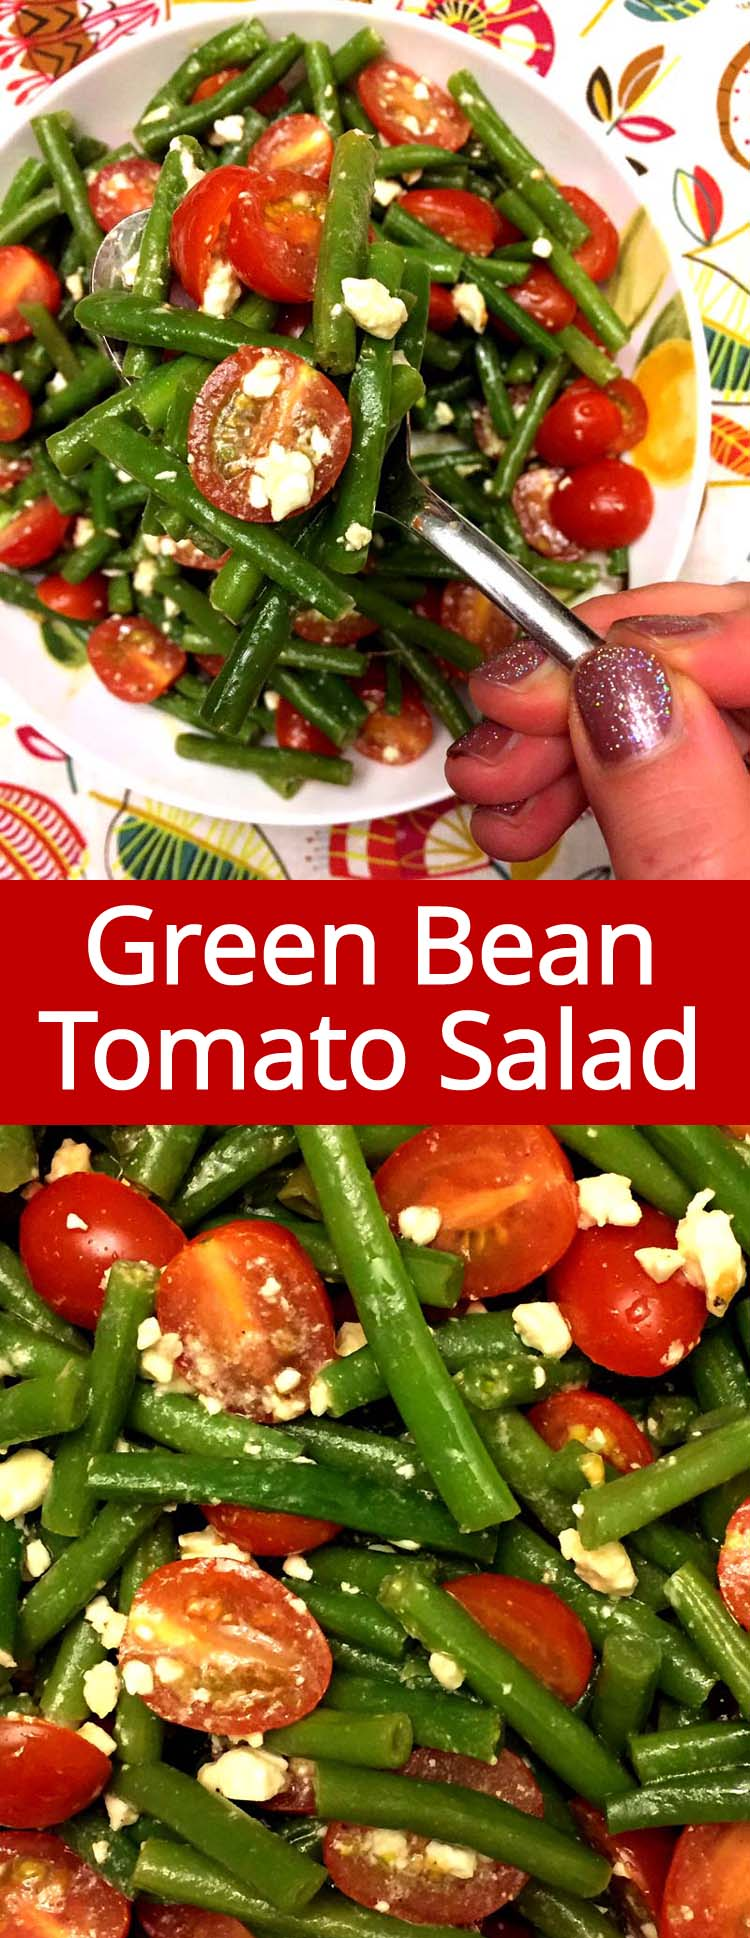 This green beans, cherry tomatoes and feta salad is amazing! So healthy, yummy, colorful and refreshing! Super easy to make too!